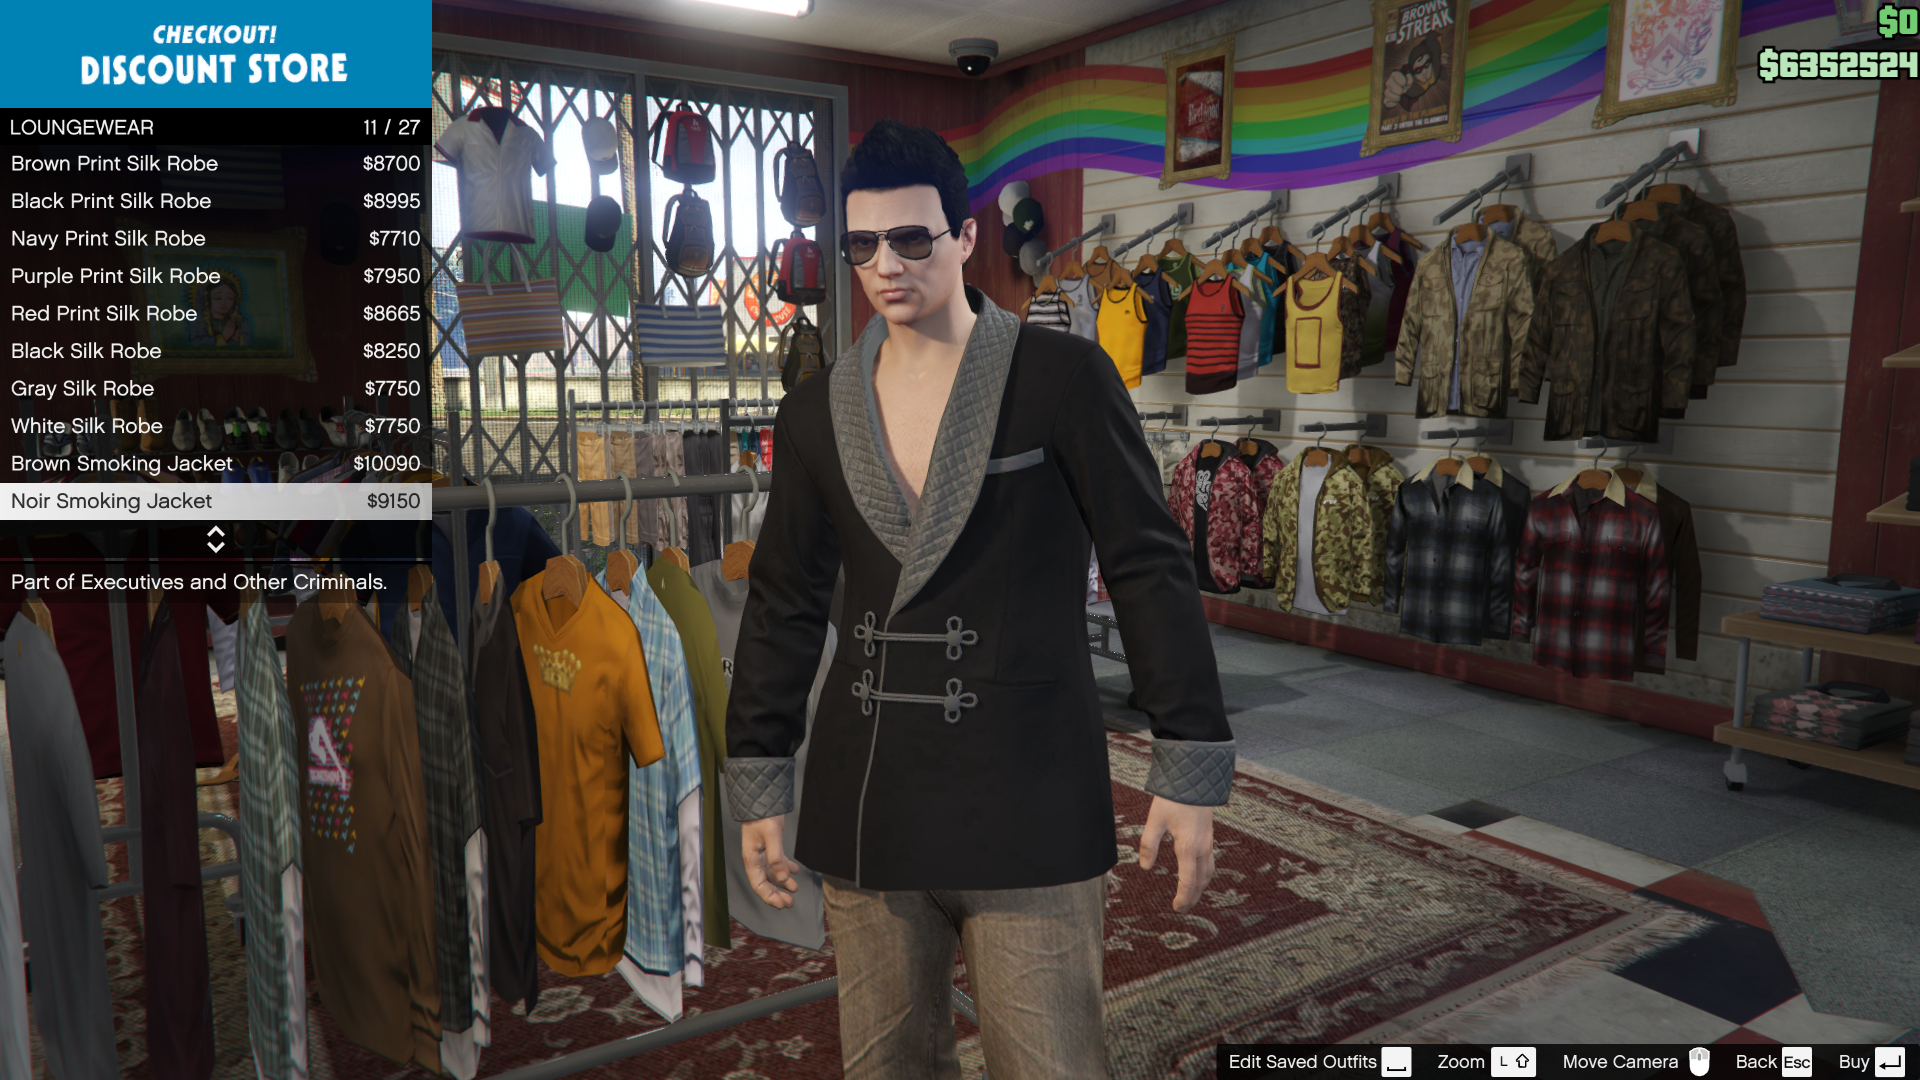 Gta online executives and other criminalscharacter customization male clothing voltagebd Image collections